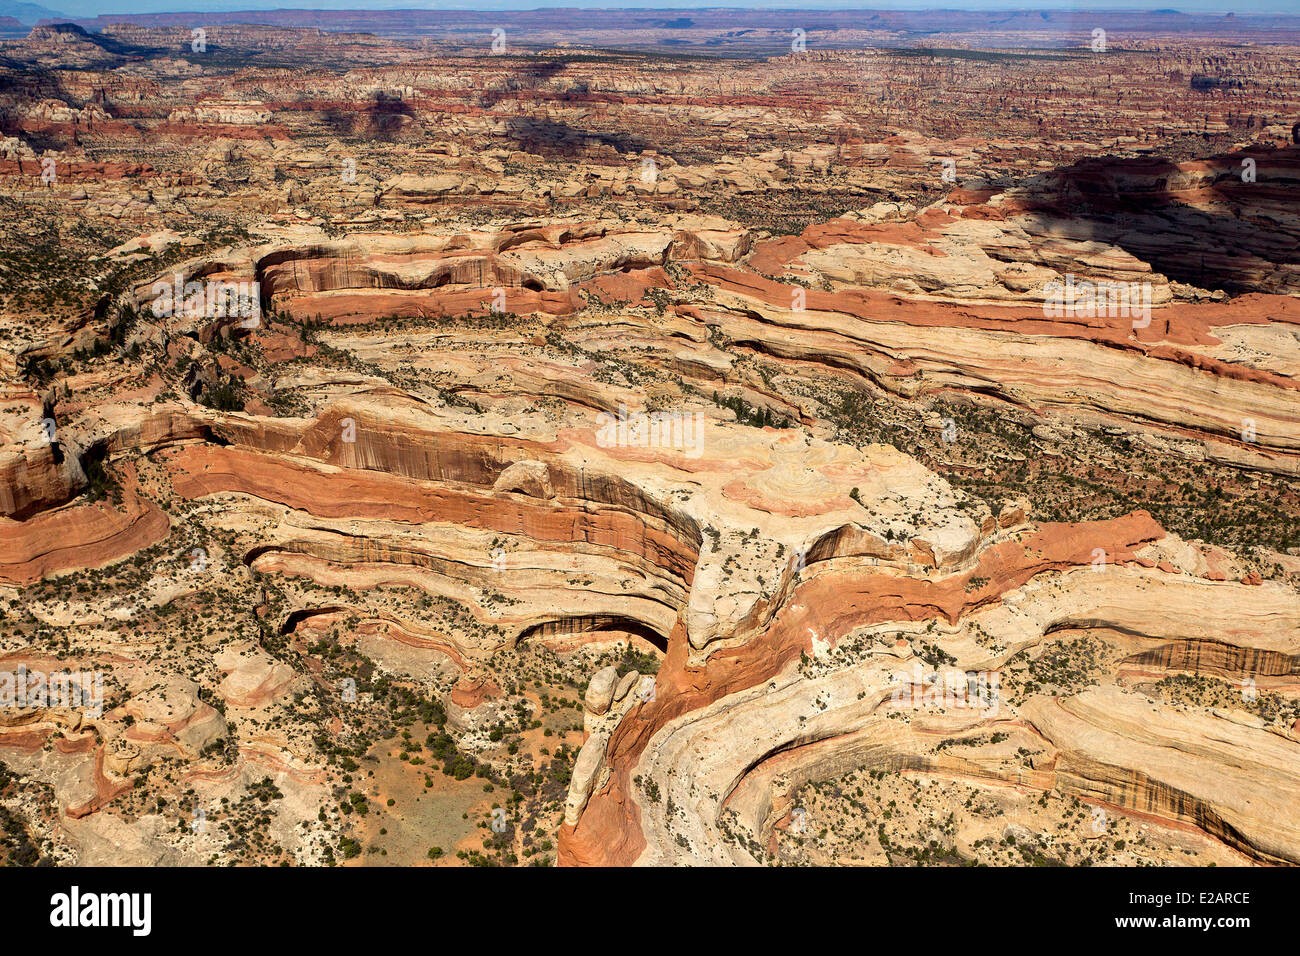 United States, Utah, Canyonland National Park, the Maze (aerial view) - Stock Image